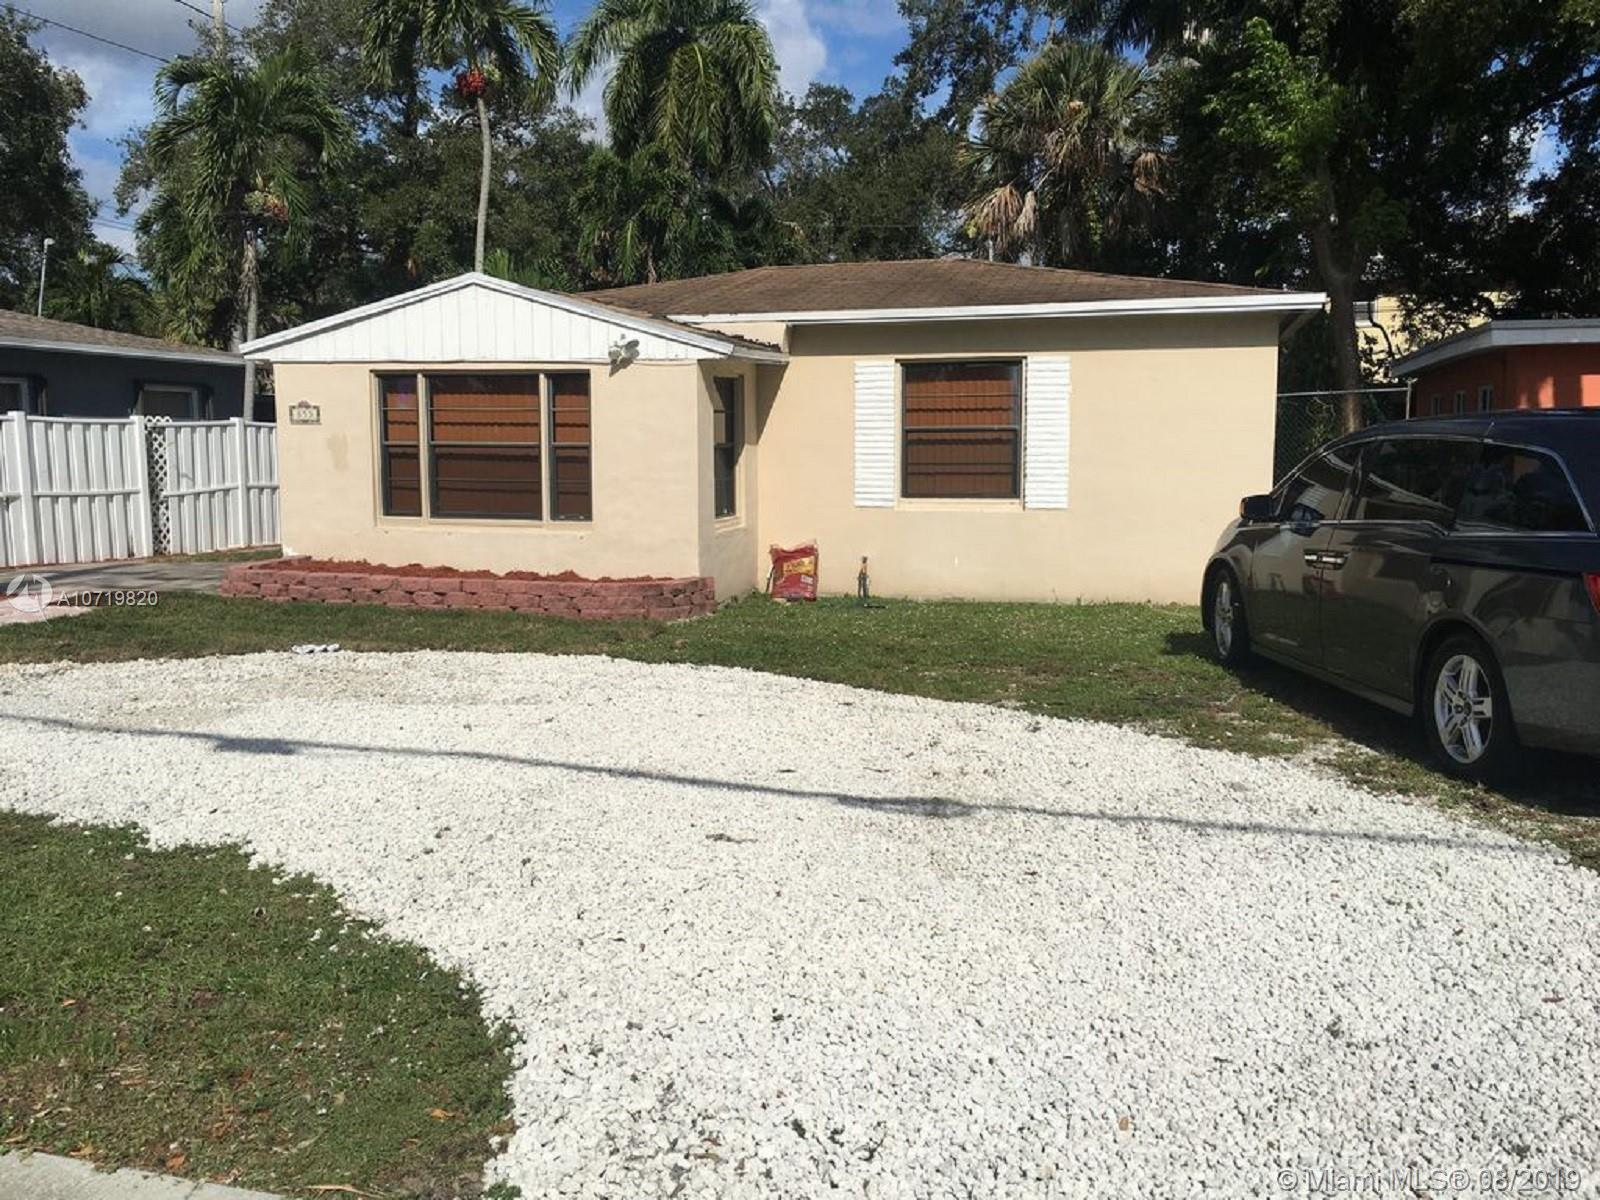 Great House located on Tarpon River  ,  1 mile to Las Olas blvd, 5 minutes driving, 4 miles to best beaches in Fort Lauderdale, investors Dream or YOUR Vacation home. Great location for an AirBnb, or  vrbo,rented 2-1 150.00  to 200.00 a day , plus 1 bedroom 1 bathroom extra 100 a day 2-1 complete house  plus mother in law  or studio , live in 2-1 , and rent studio AirBnb, or  vrbo100 a day big back yard , Big jacuzzy, washer and dryer new, all central ac , listing agent ownerTarpon Riverreduced     will not  last   290.000   original 350.000